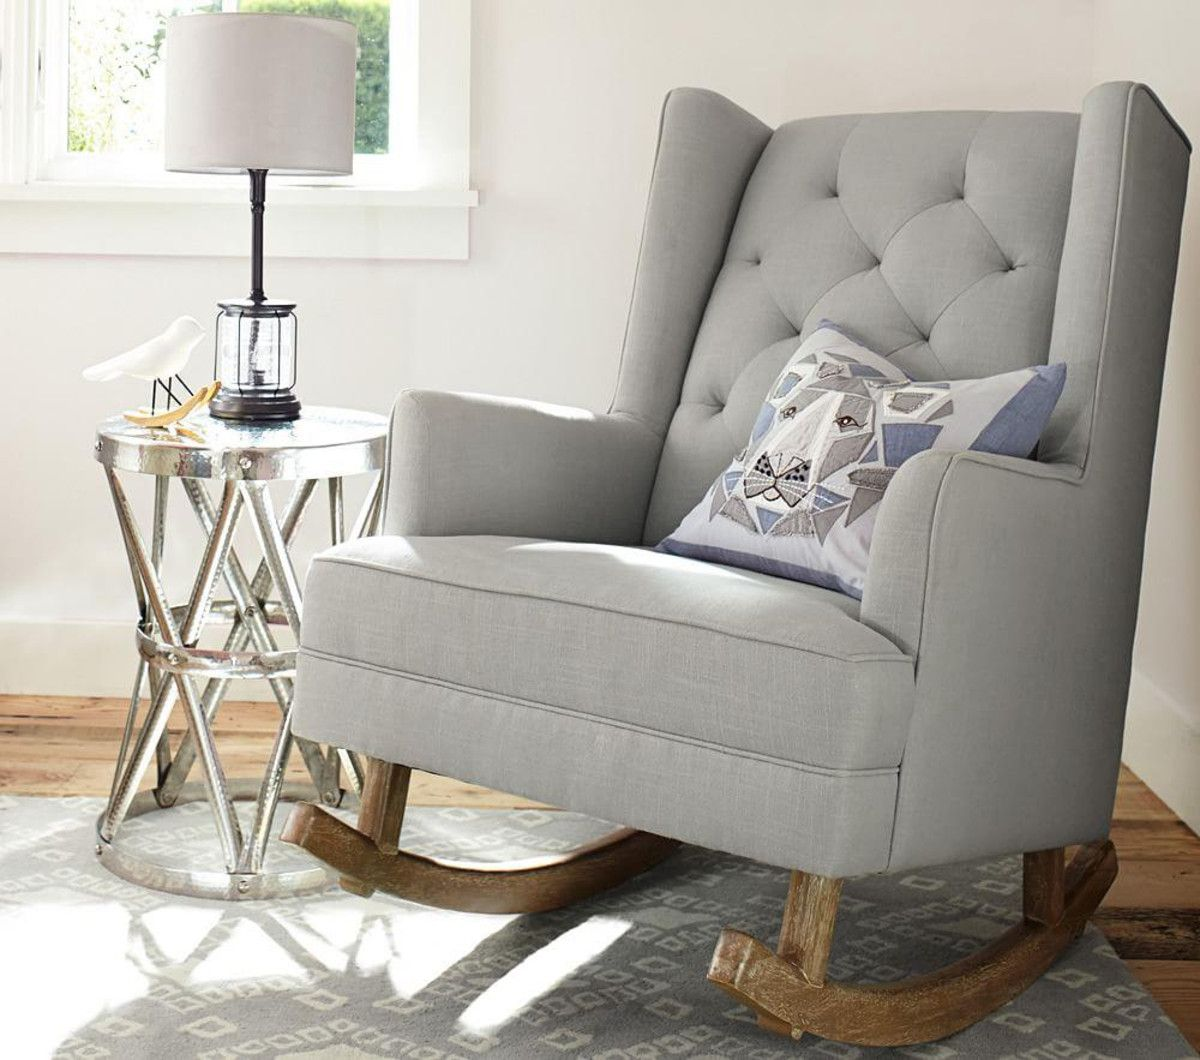 How to buy nursery rocking chair in